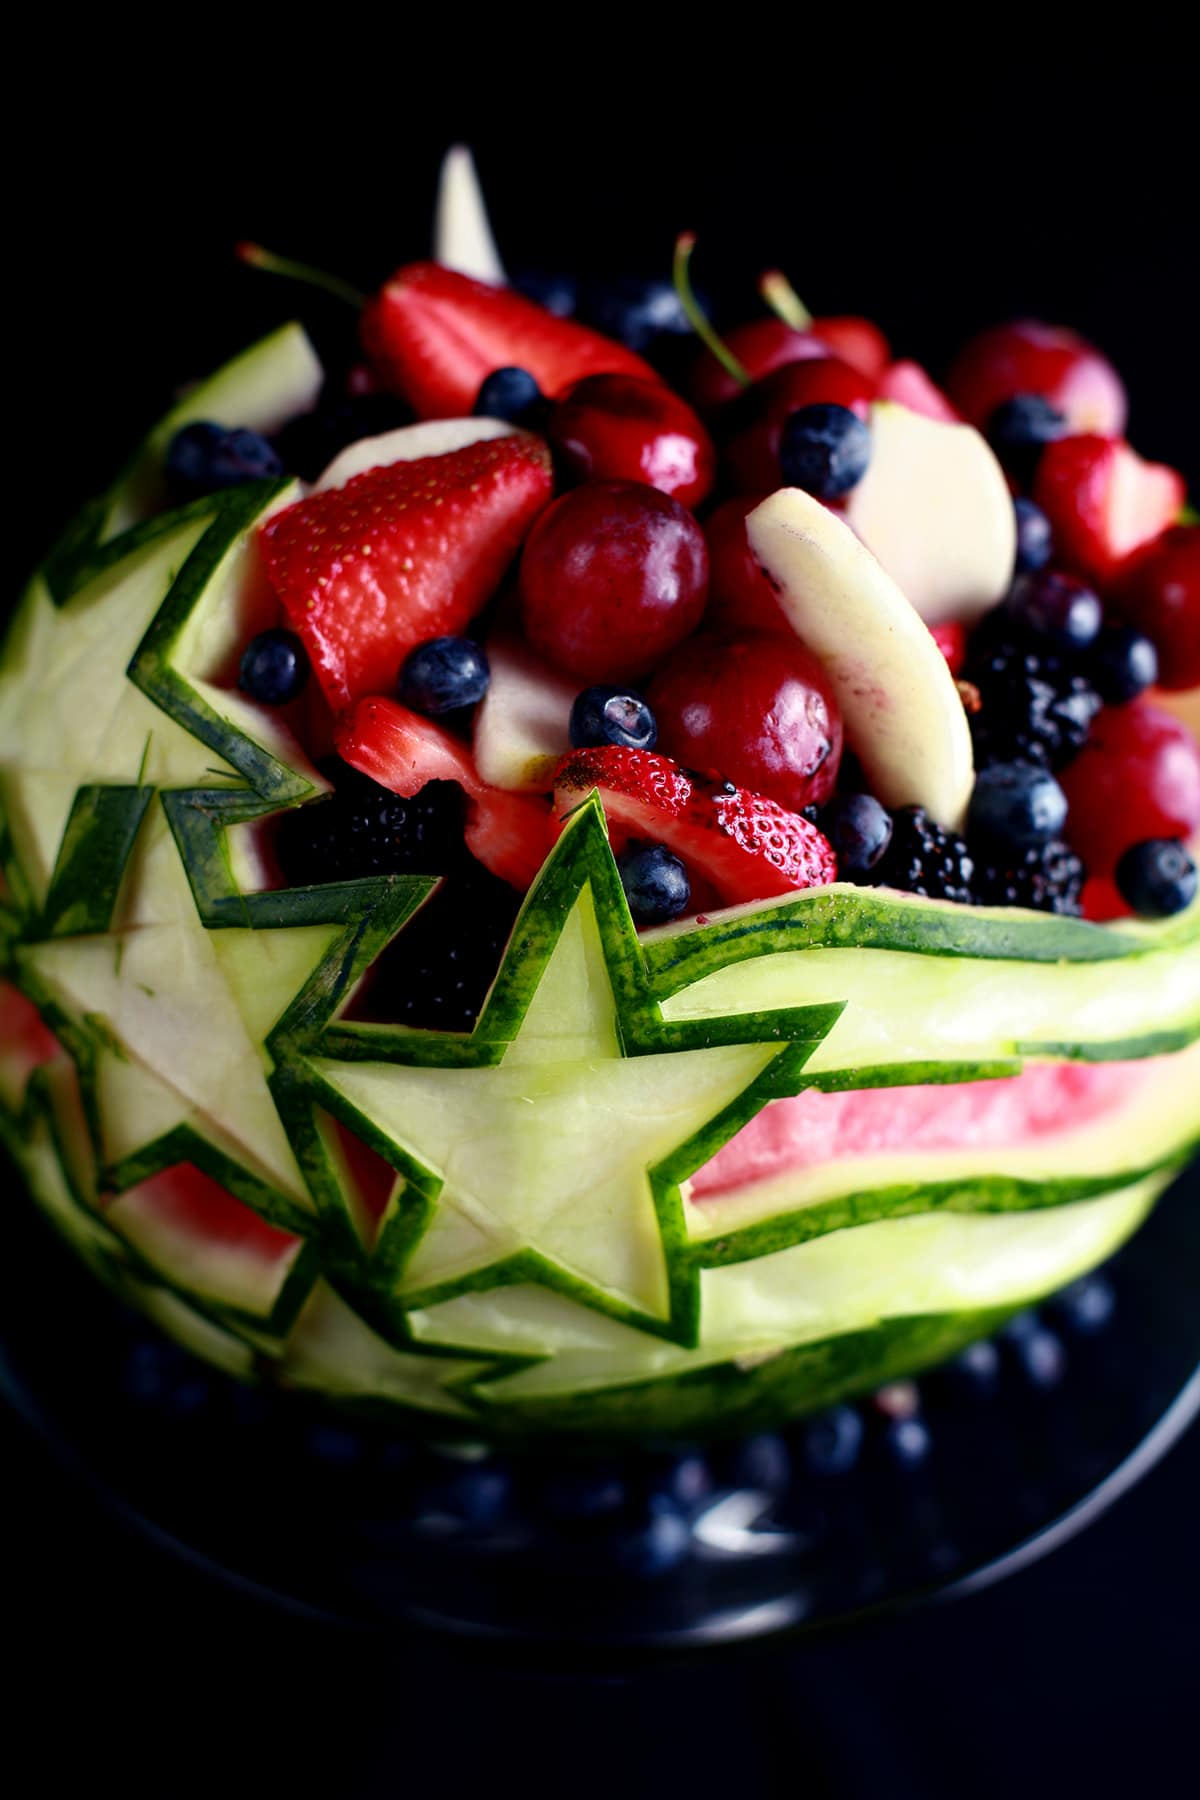 An Independence Day Watermelon Bowl. It is carved with a stars and stripes design, and filled with red, white, and blue fruit.